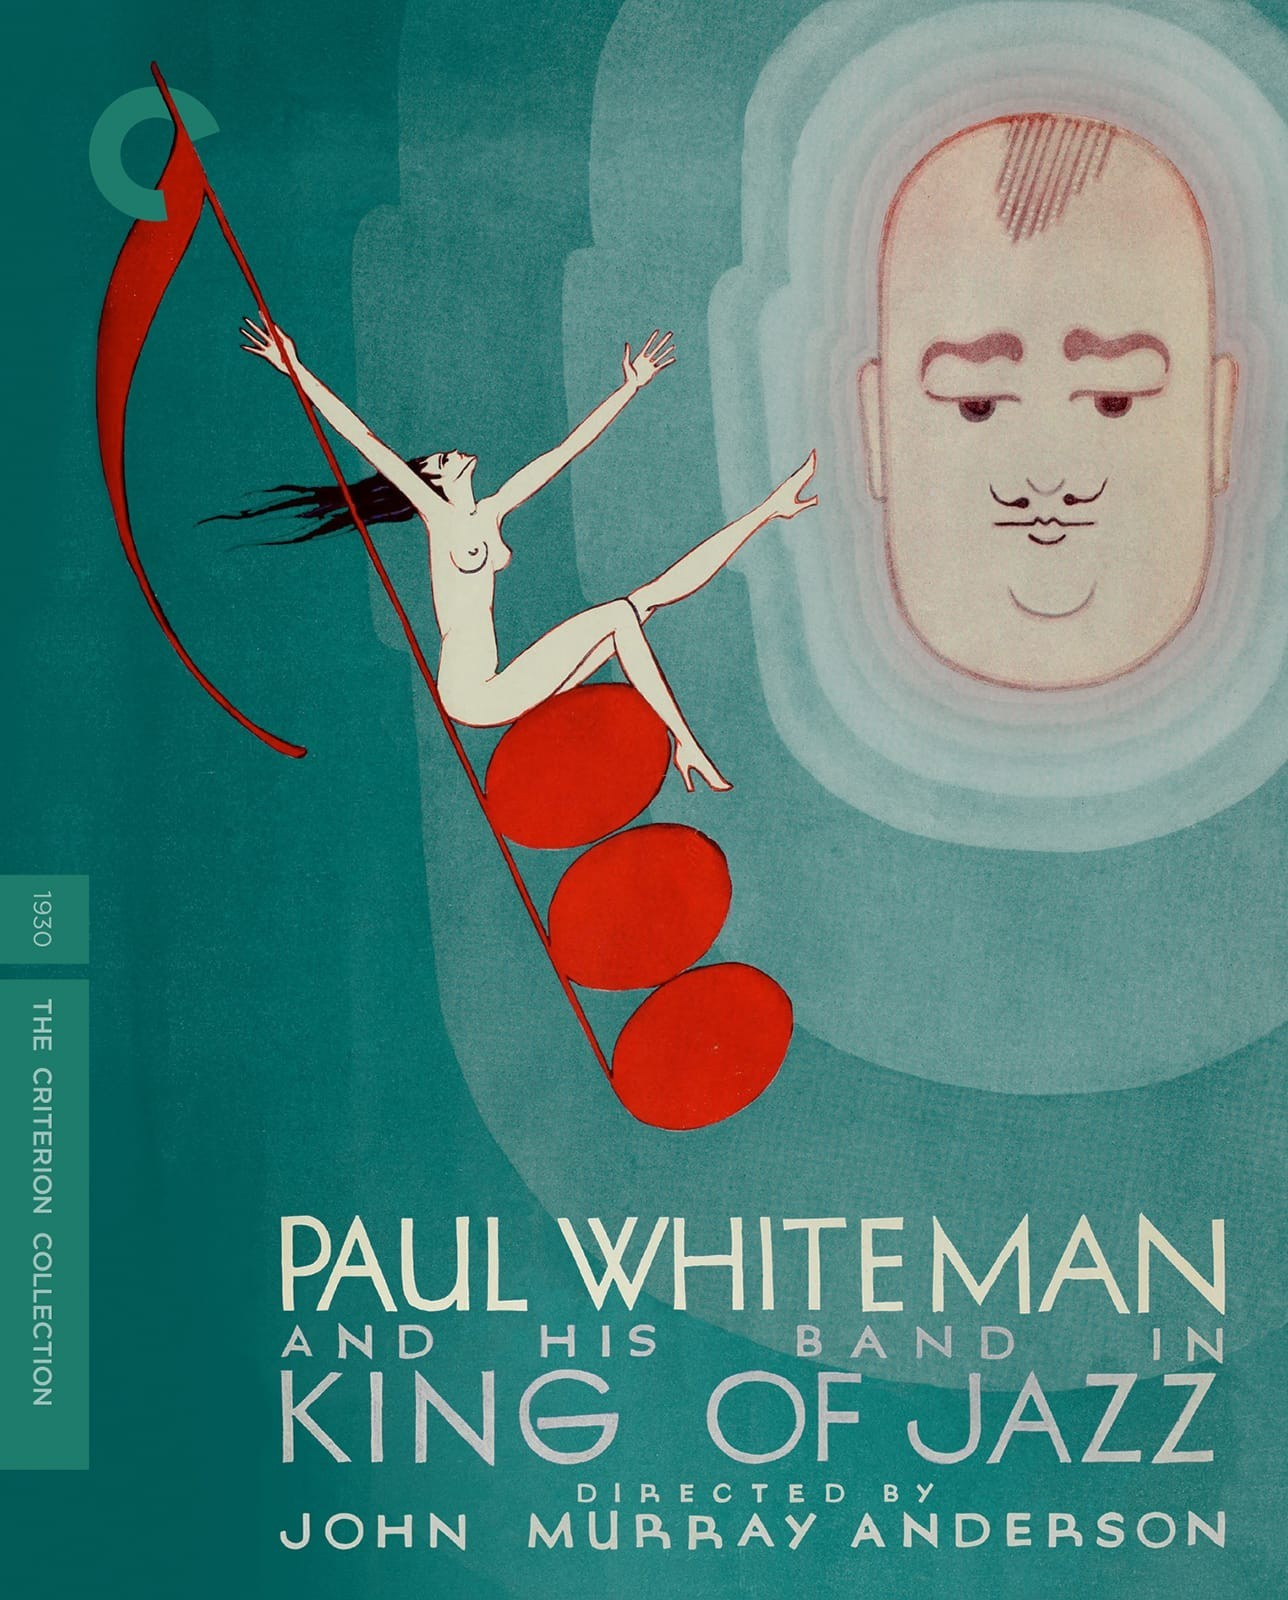 King of Jazz (The Criterion Collection)(1930) Blu-ray